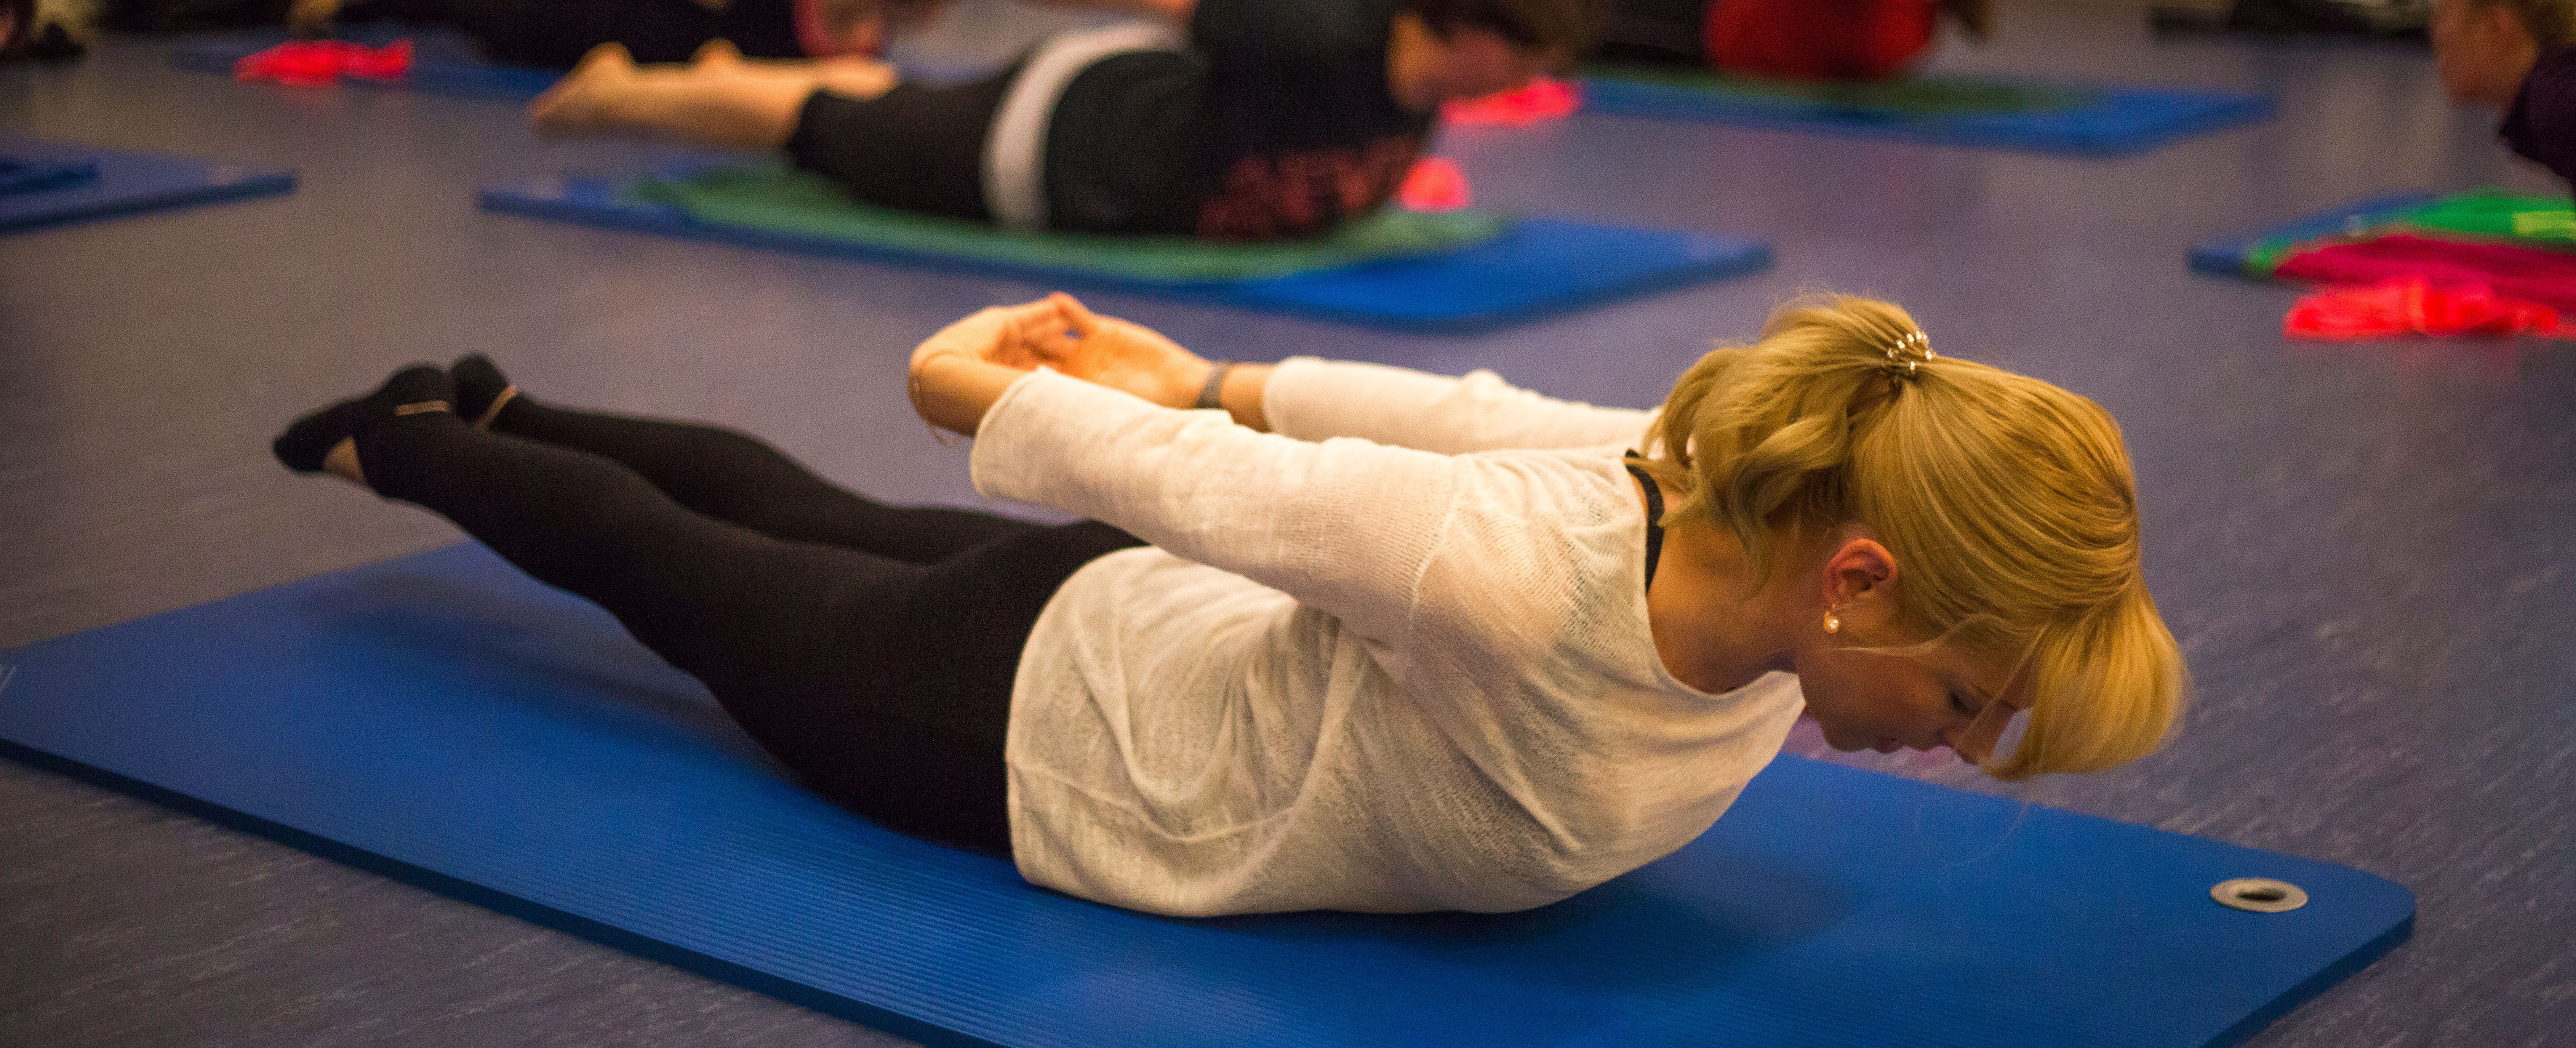 Teacher demonstrating a pilates exercise